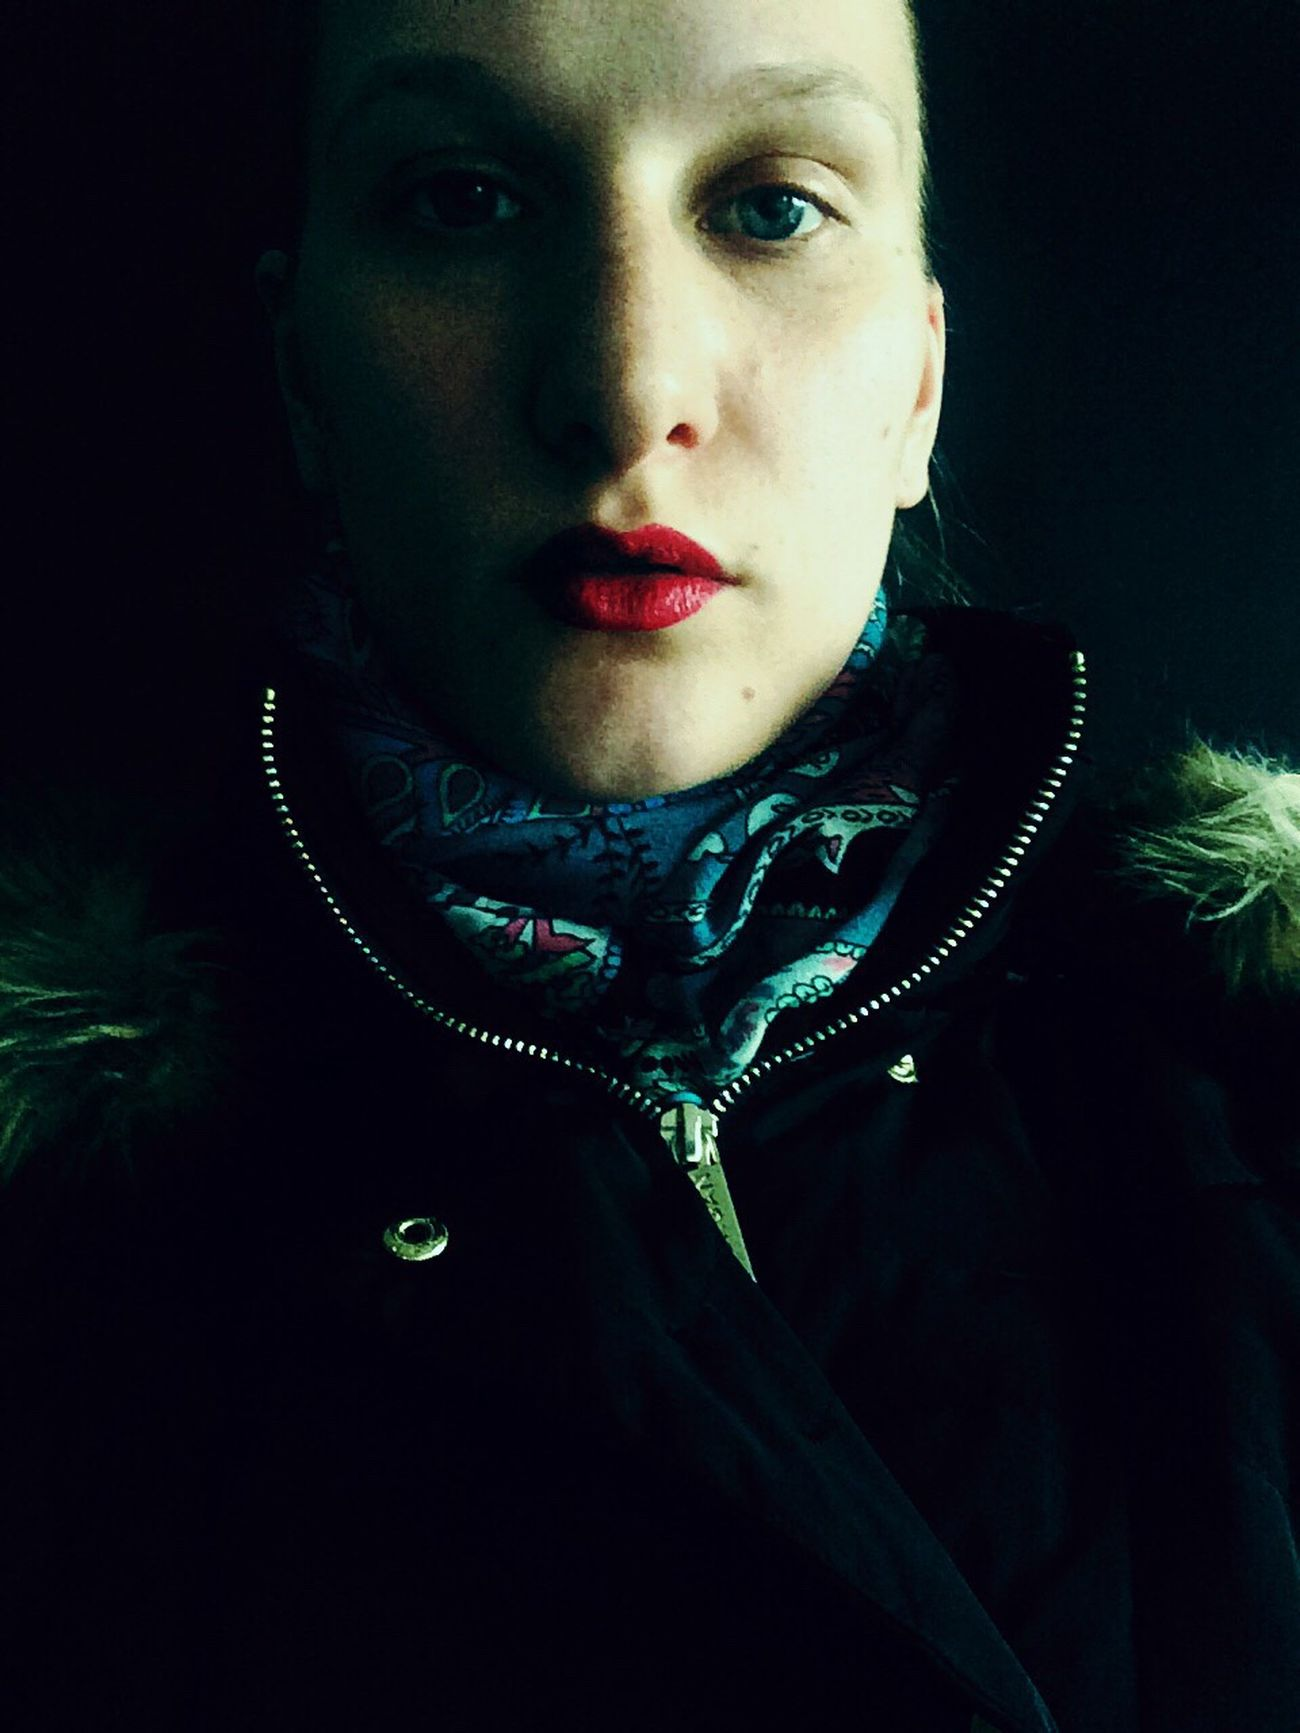 Self Portrait Portrait Female Iphonography Iphoneonly Dark Zipper Red Lips Sidelight Face Direct View